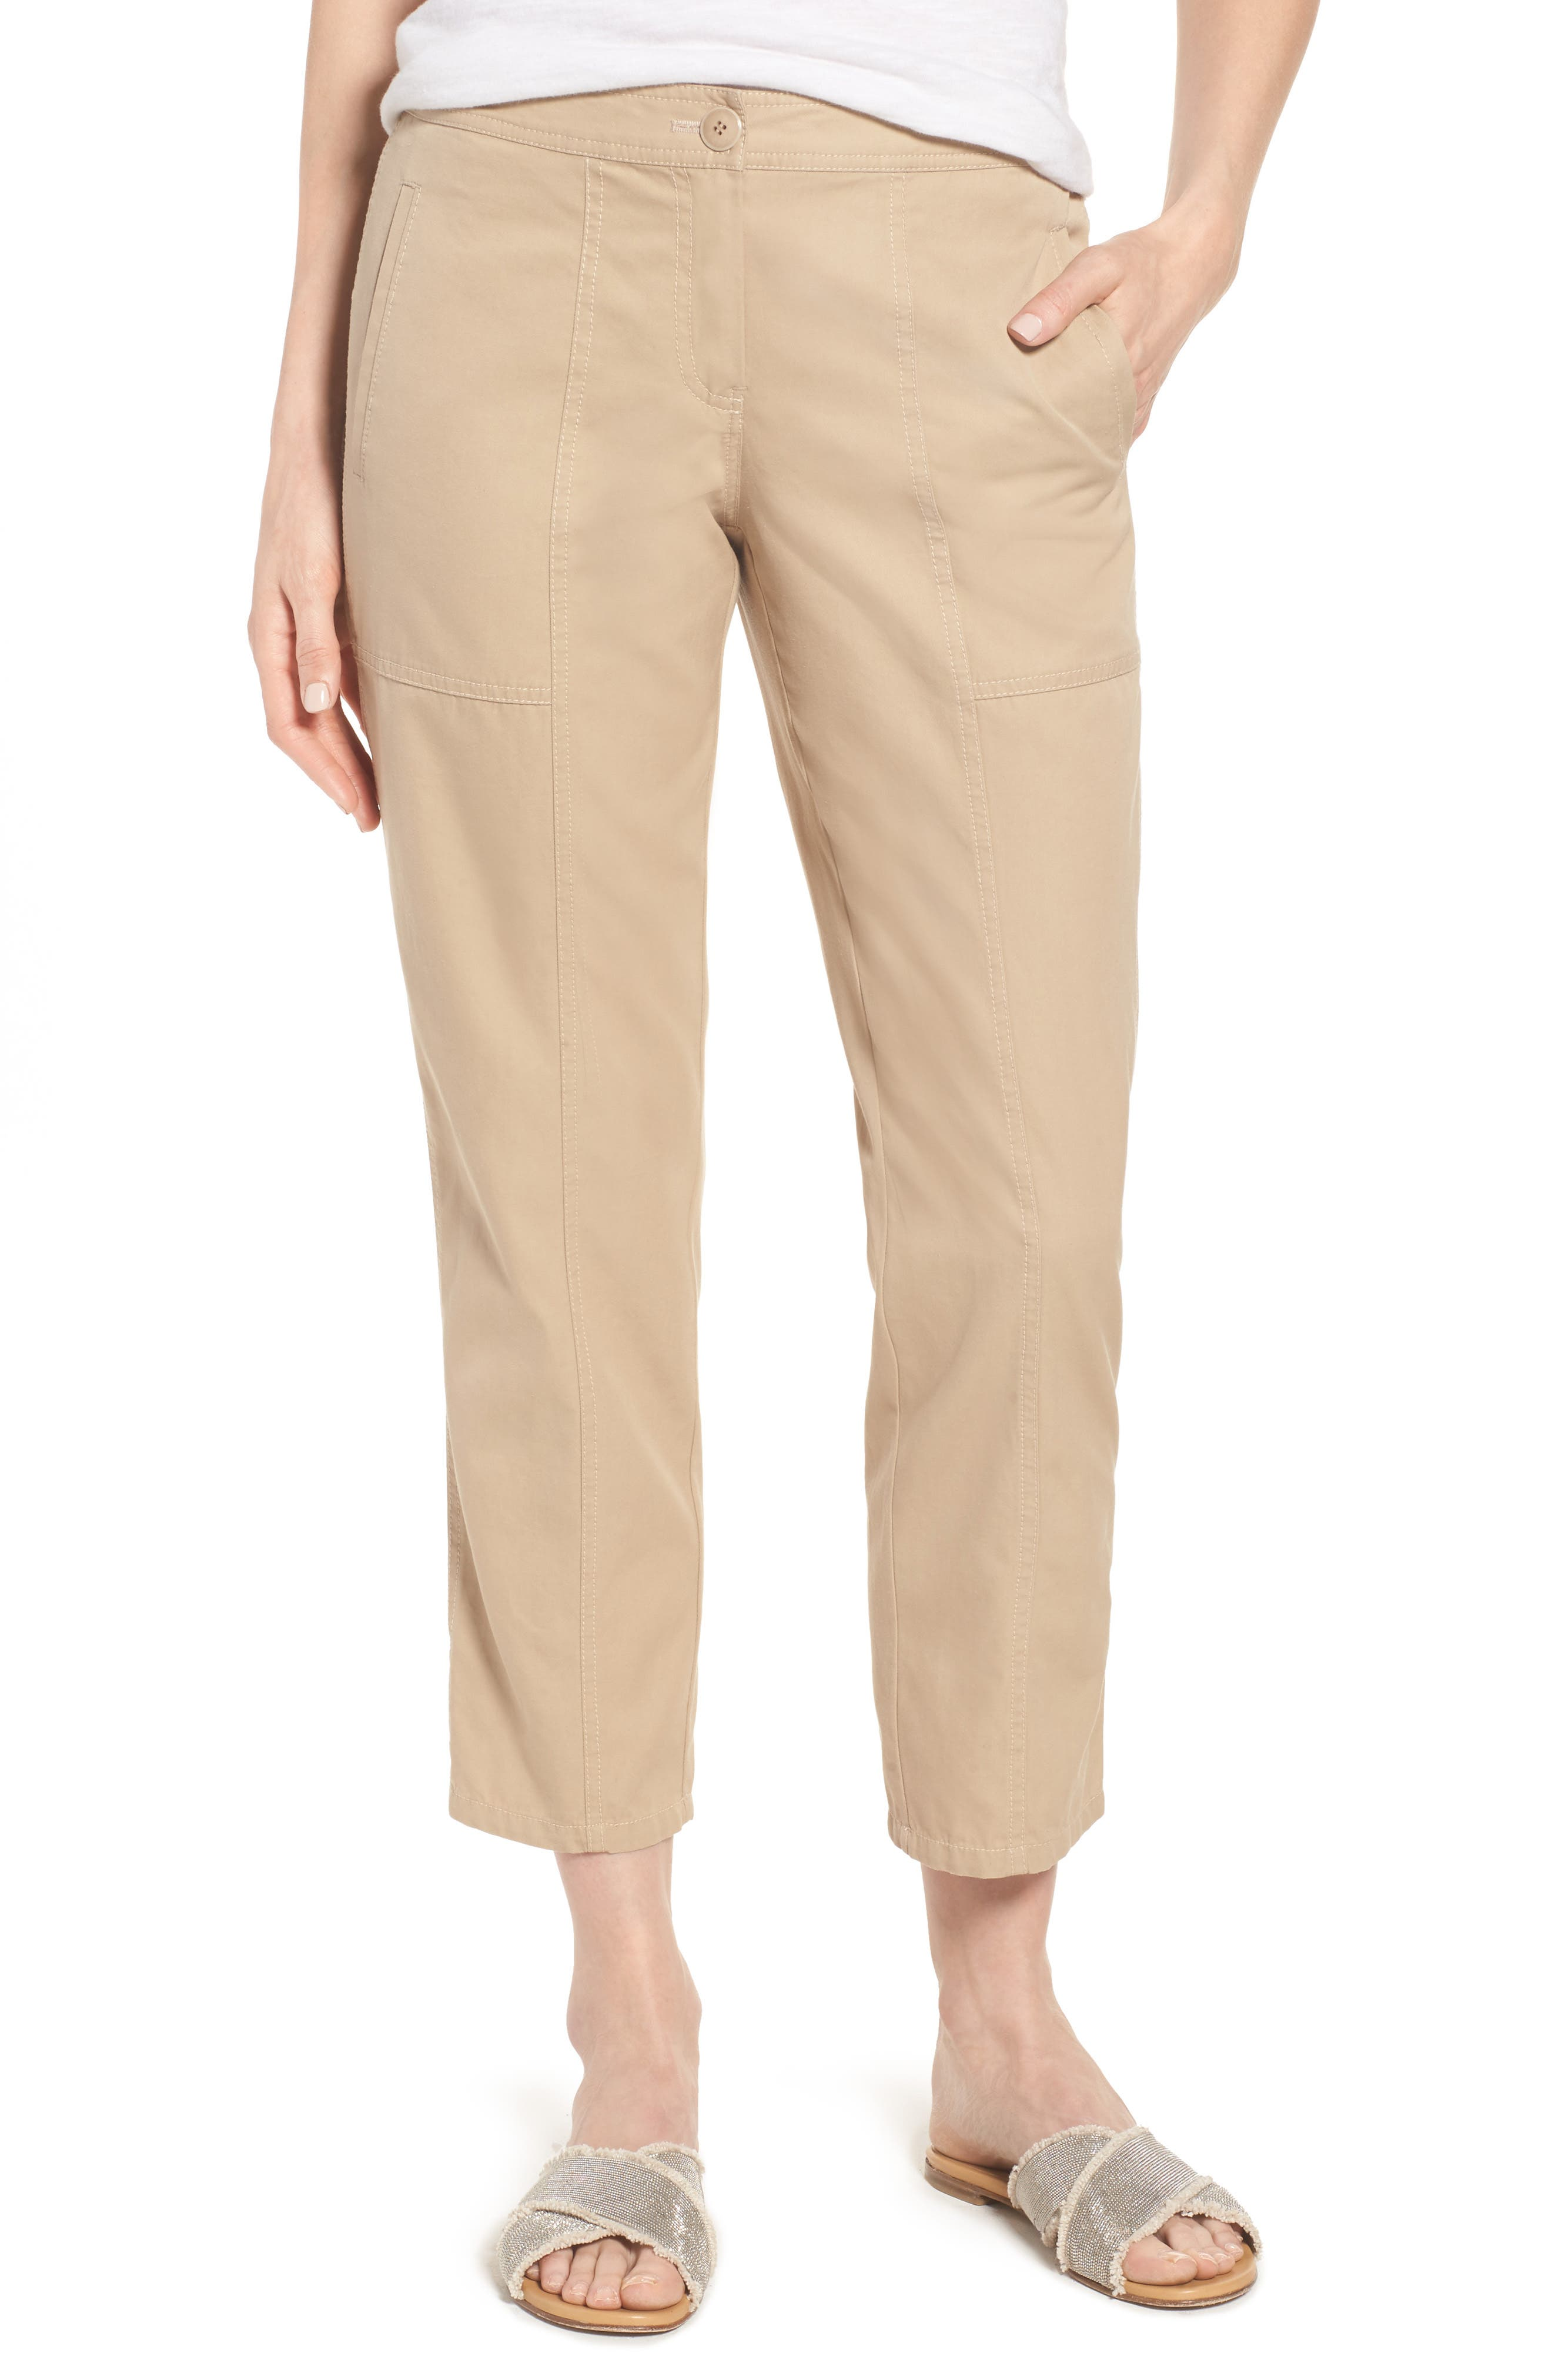 Nordstrom Signature Wide Leg Crop Pants